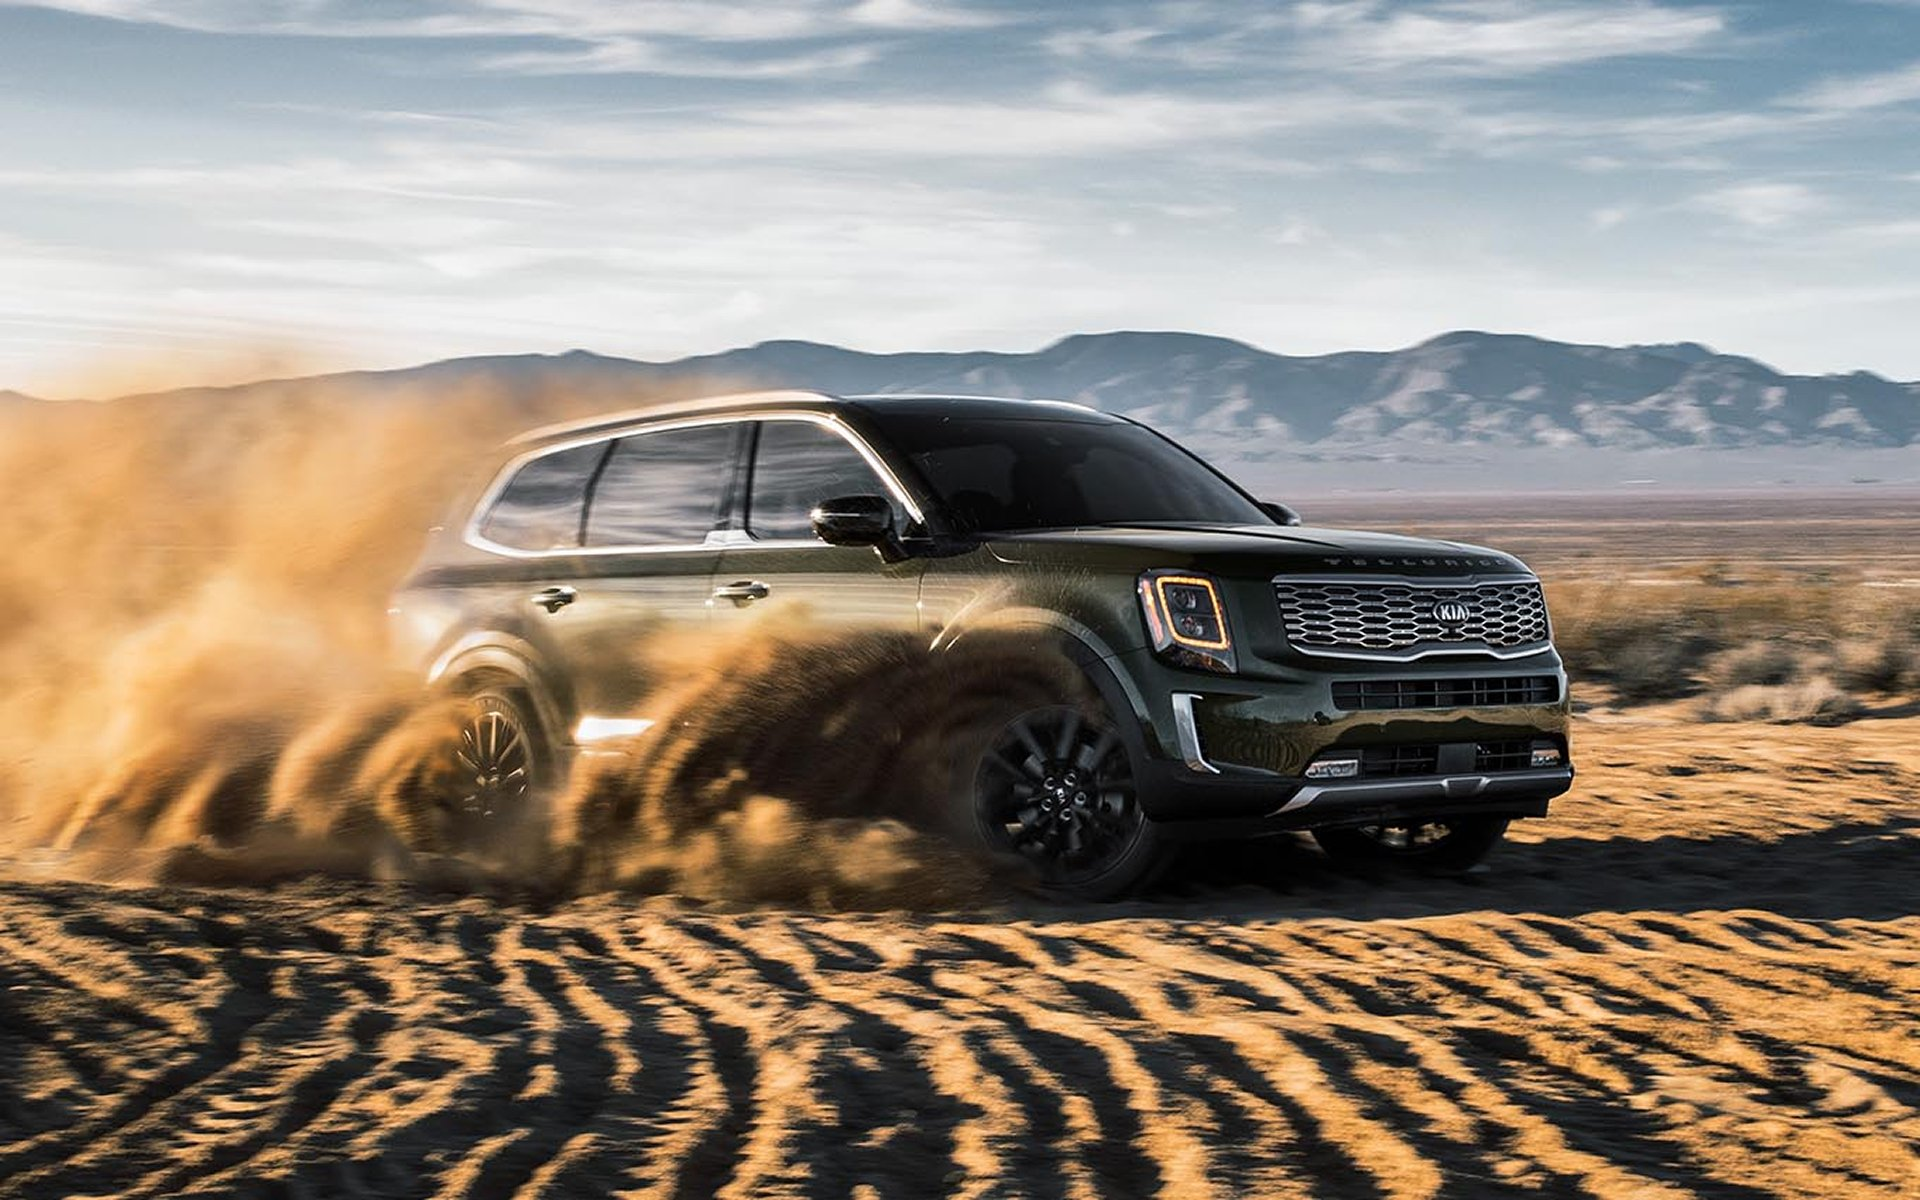 2020 Kia Telluride for Sale near Pasadena, TX